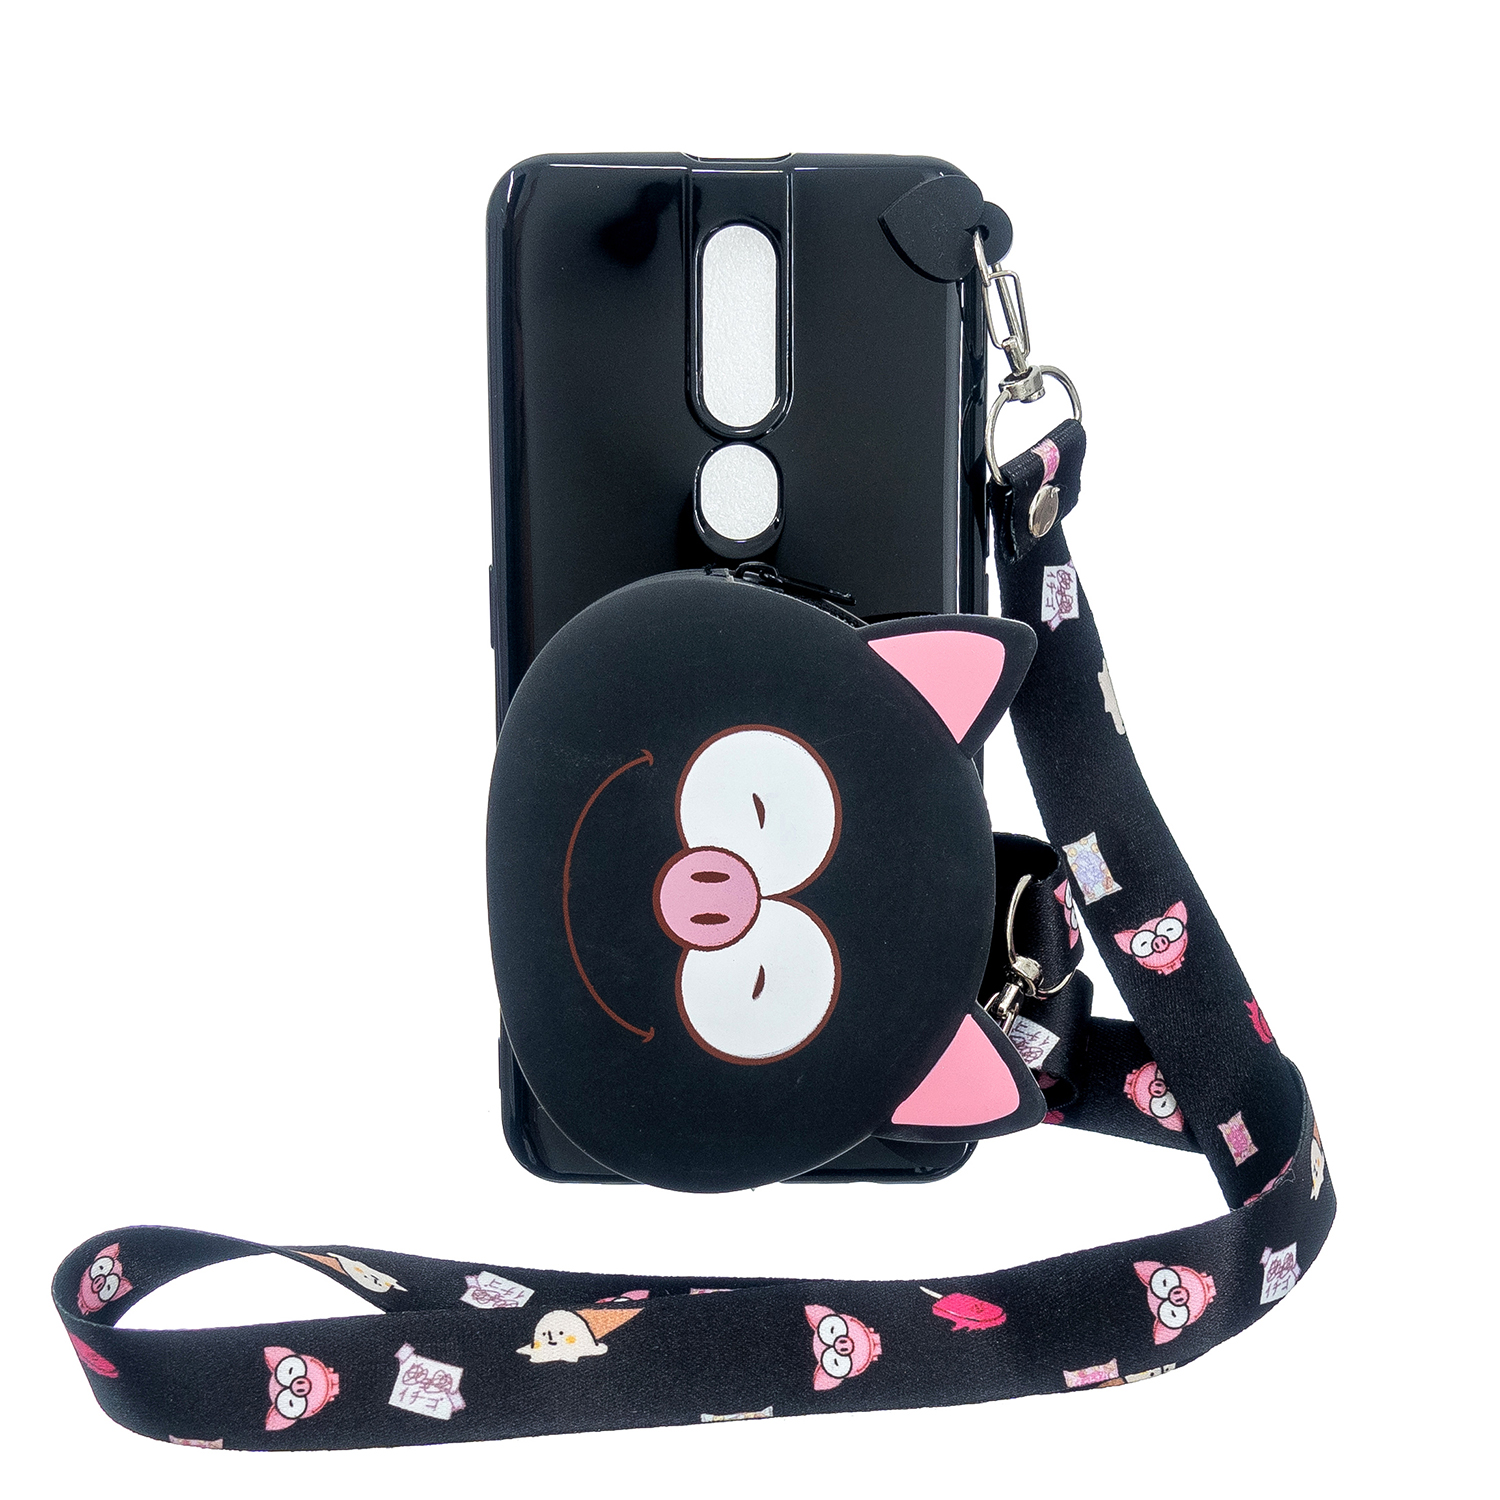 For OPPO F11/F11 Pro Cellphone Case Mobile Phone TPU Shell Shockproof Cover with Cartoon Cat Pig Panda Coin Purse Lovely Shoulder Starp  Black